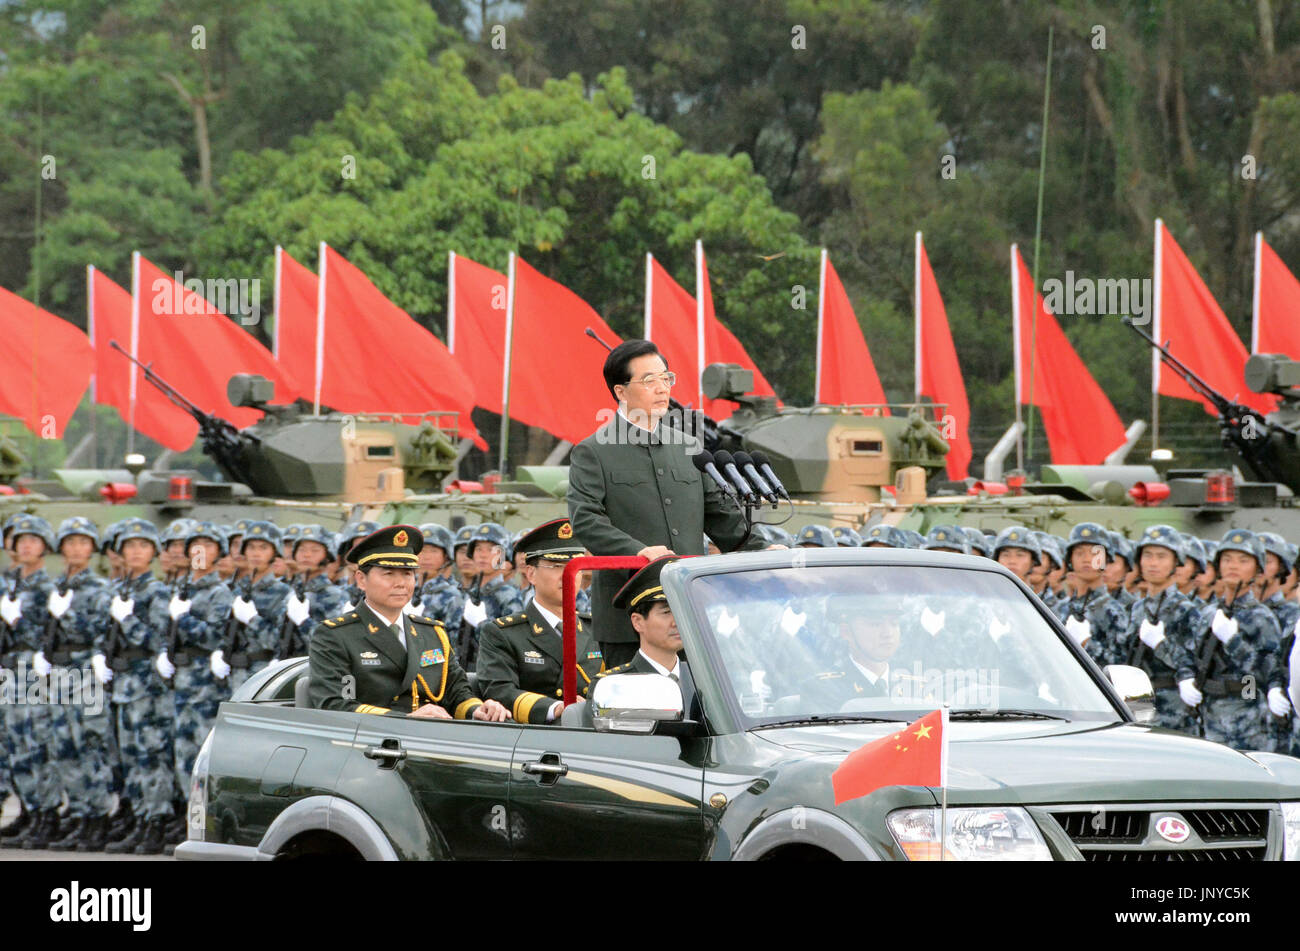 HONG KONG, China - Chinese President Hu Jintao stands in an open-top vehicle as he moves down a line of People's Liberation Army personnel stationed in Hong Kong on June 29, 2012. Hu began a three-day visit to Hong Kong to celebrate the 15th anniversary of its return to Chinese rule and to preside over the swearing-in of the territory's new administration. (Kyodo) Stock Photo